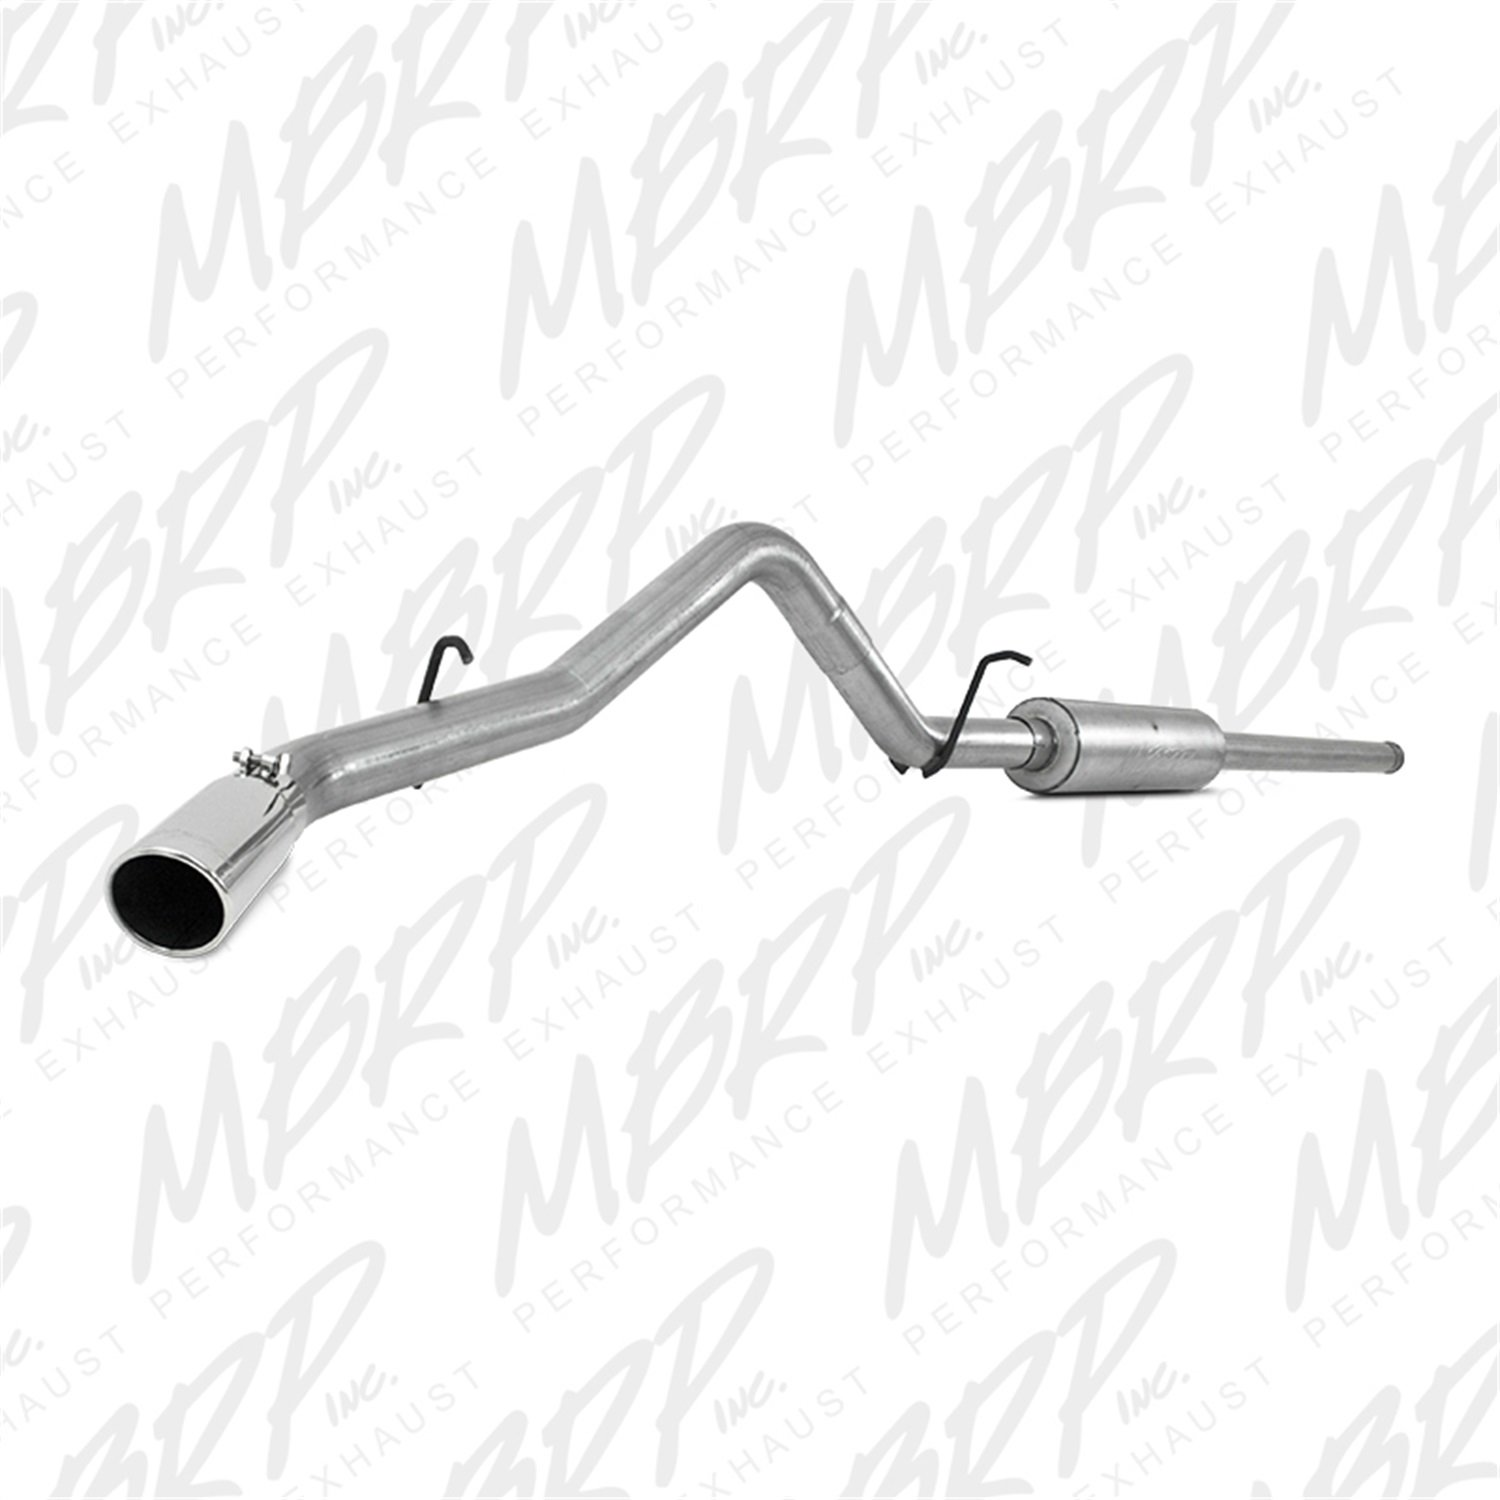 MBRP S5080AL 3'' Cat Back, Single Side Exit Exhaust System (Aluminized Steel)